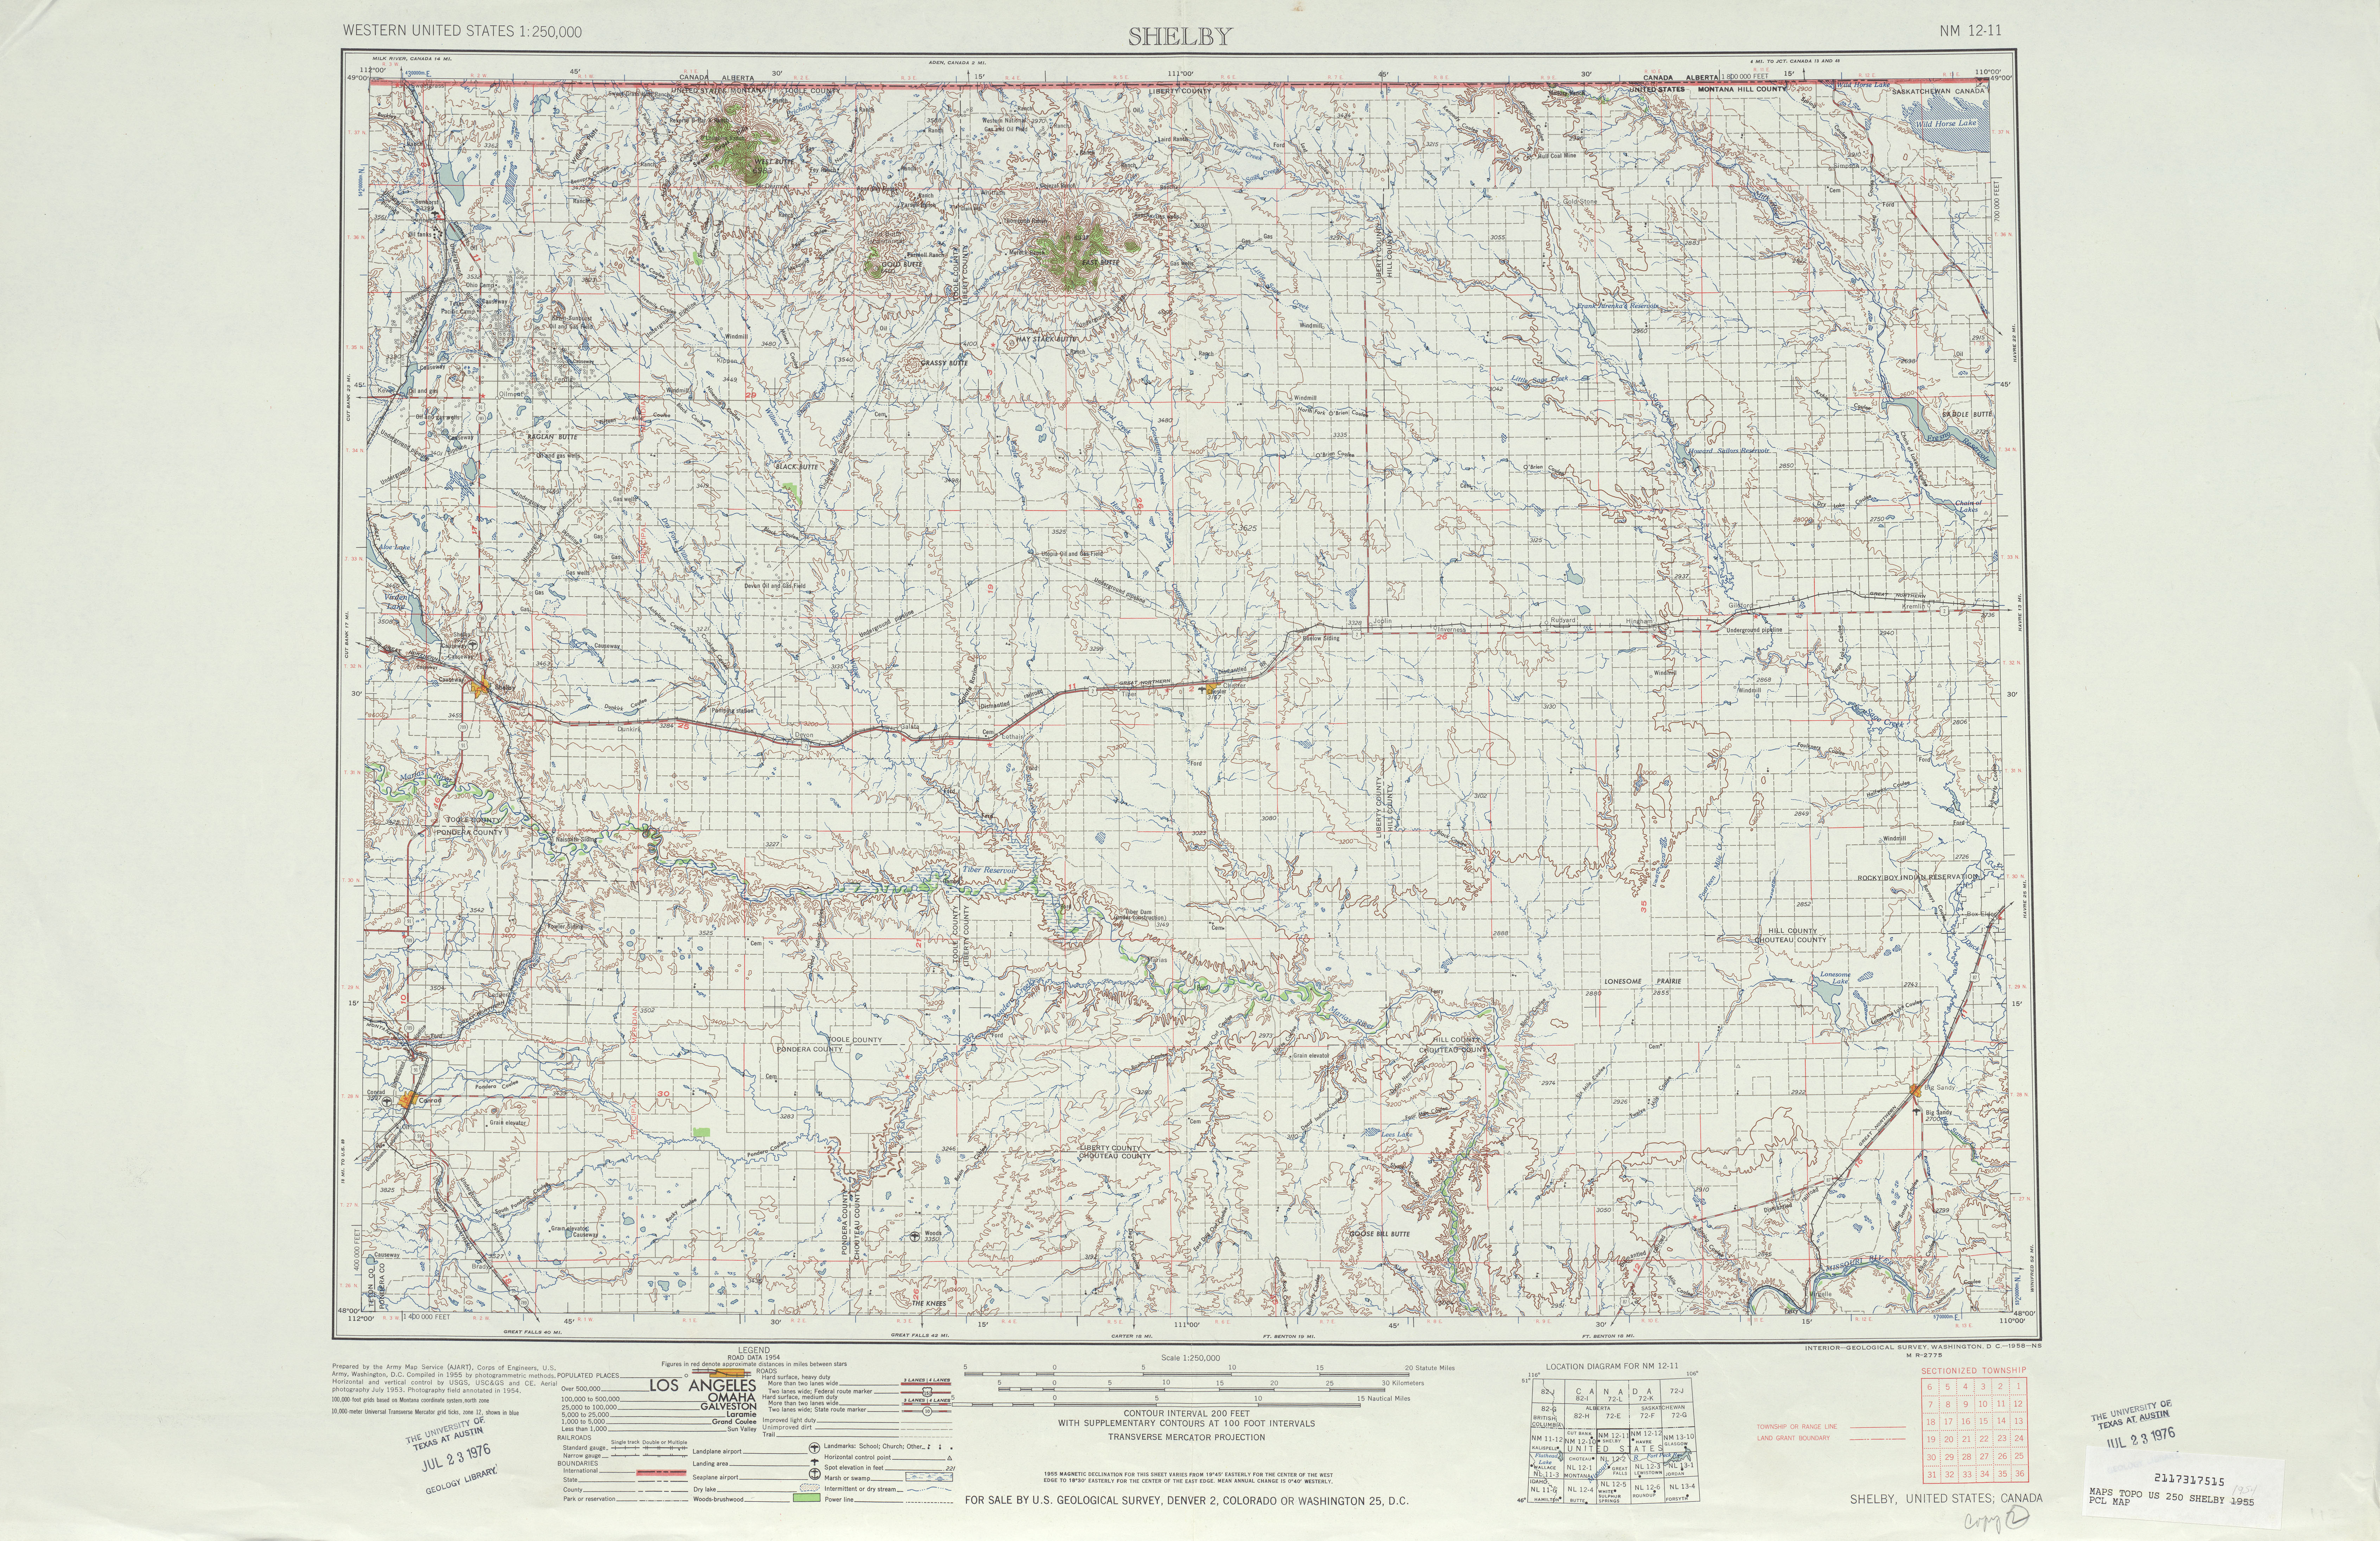 Shelby Topographic Map Sheet, United States 1954